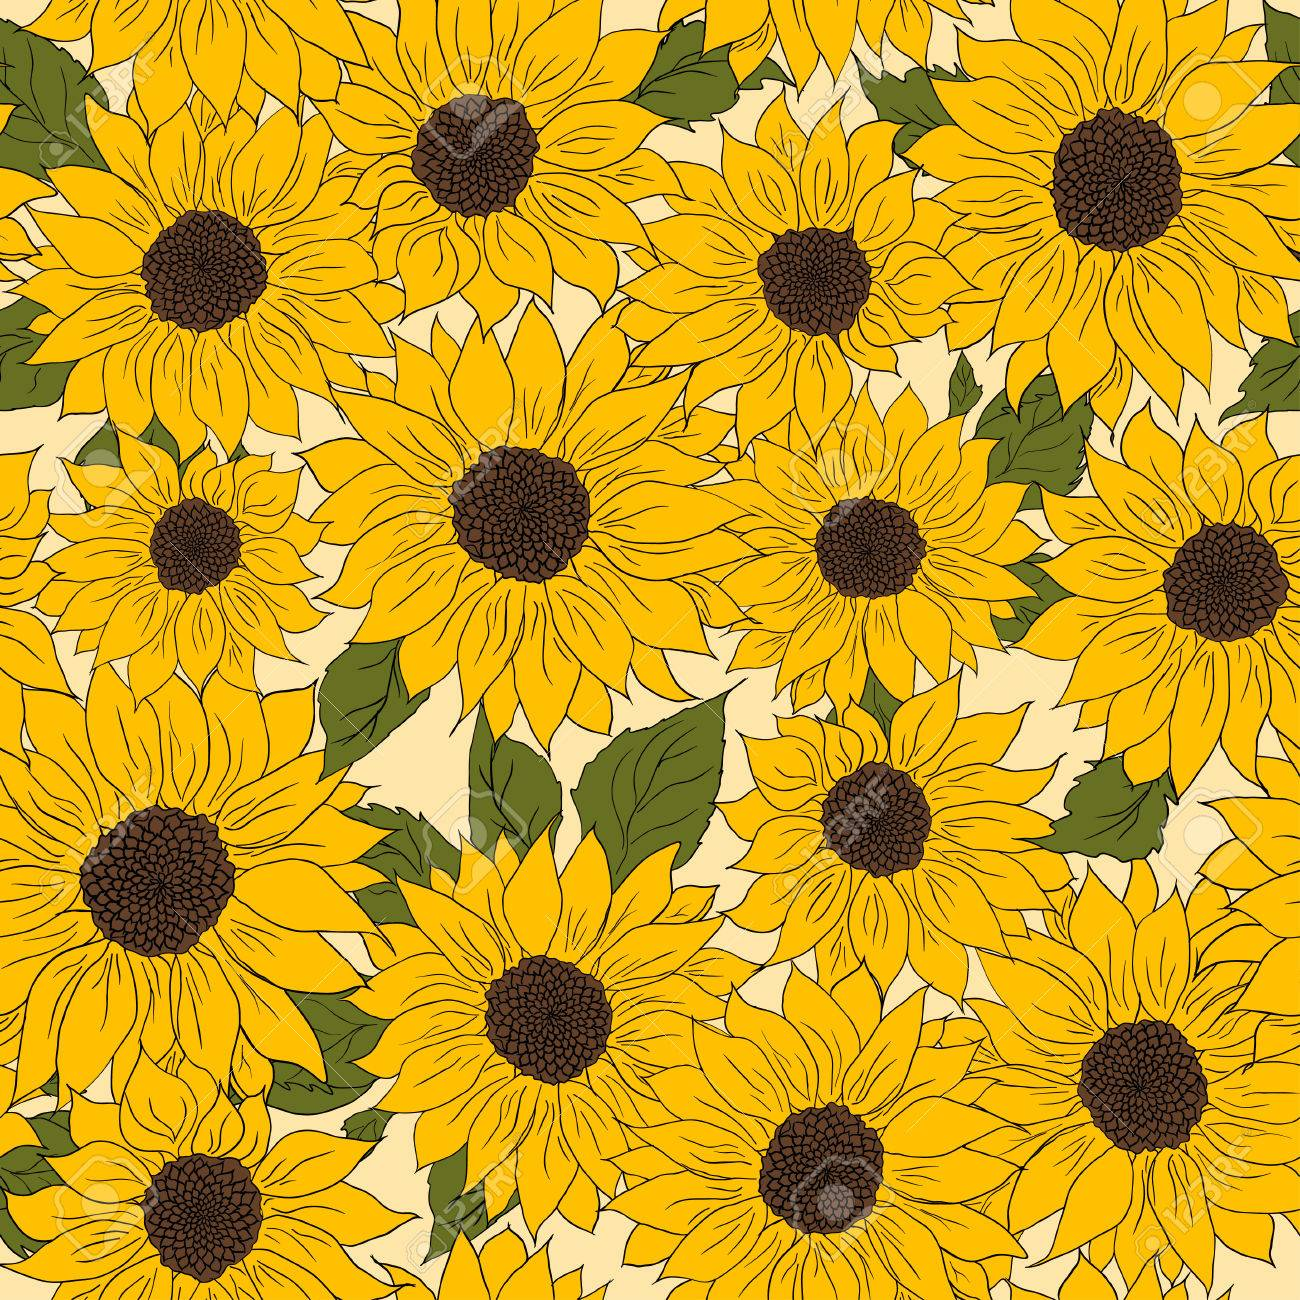 Hand Drawn Pattern Of Sunflowers Background Flower Sunflower Yellow And Brown Packaging Oil